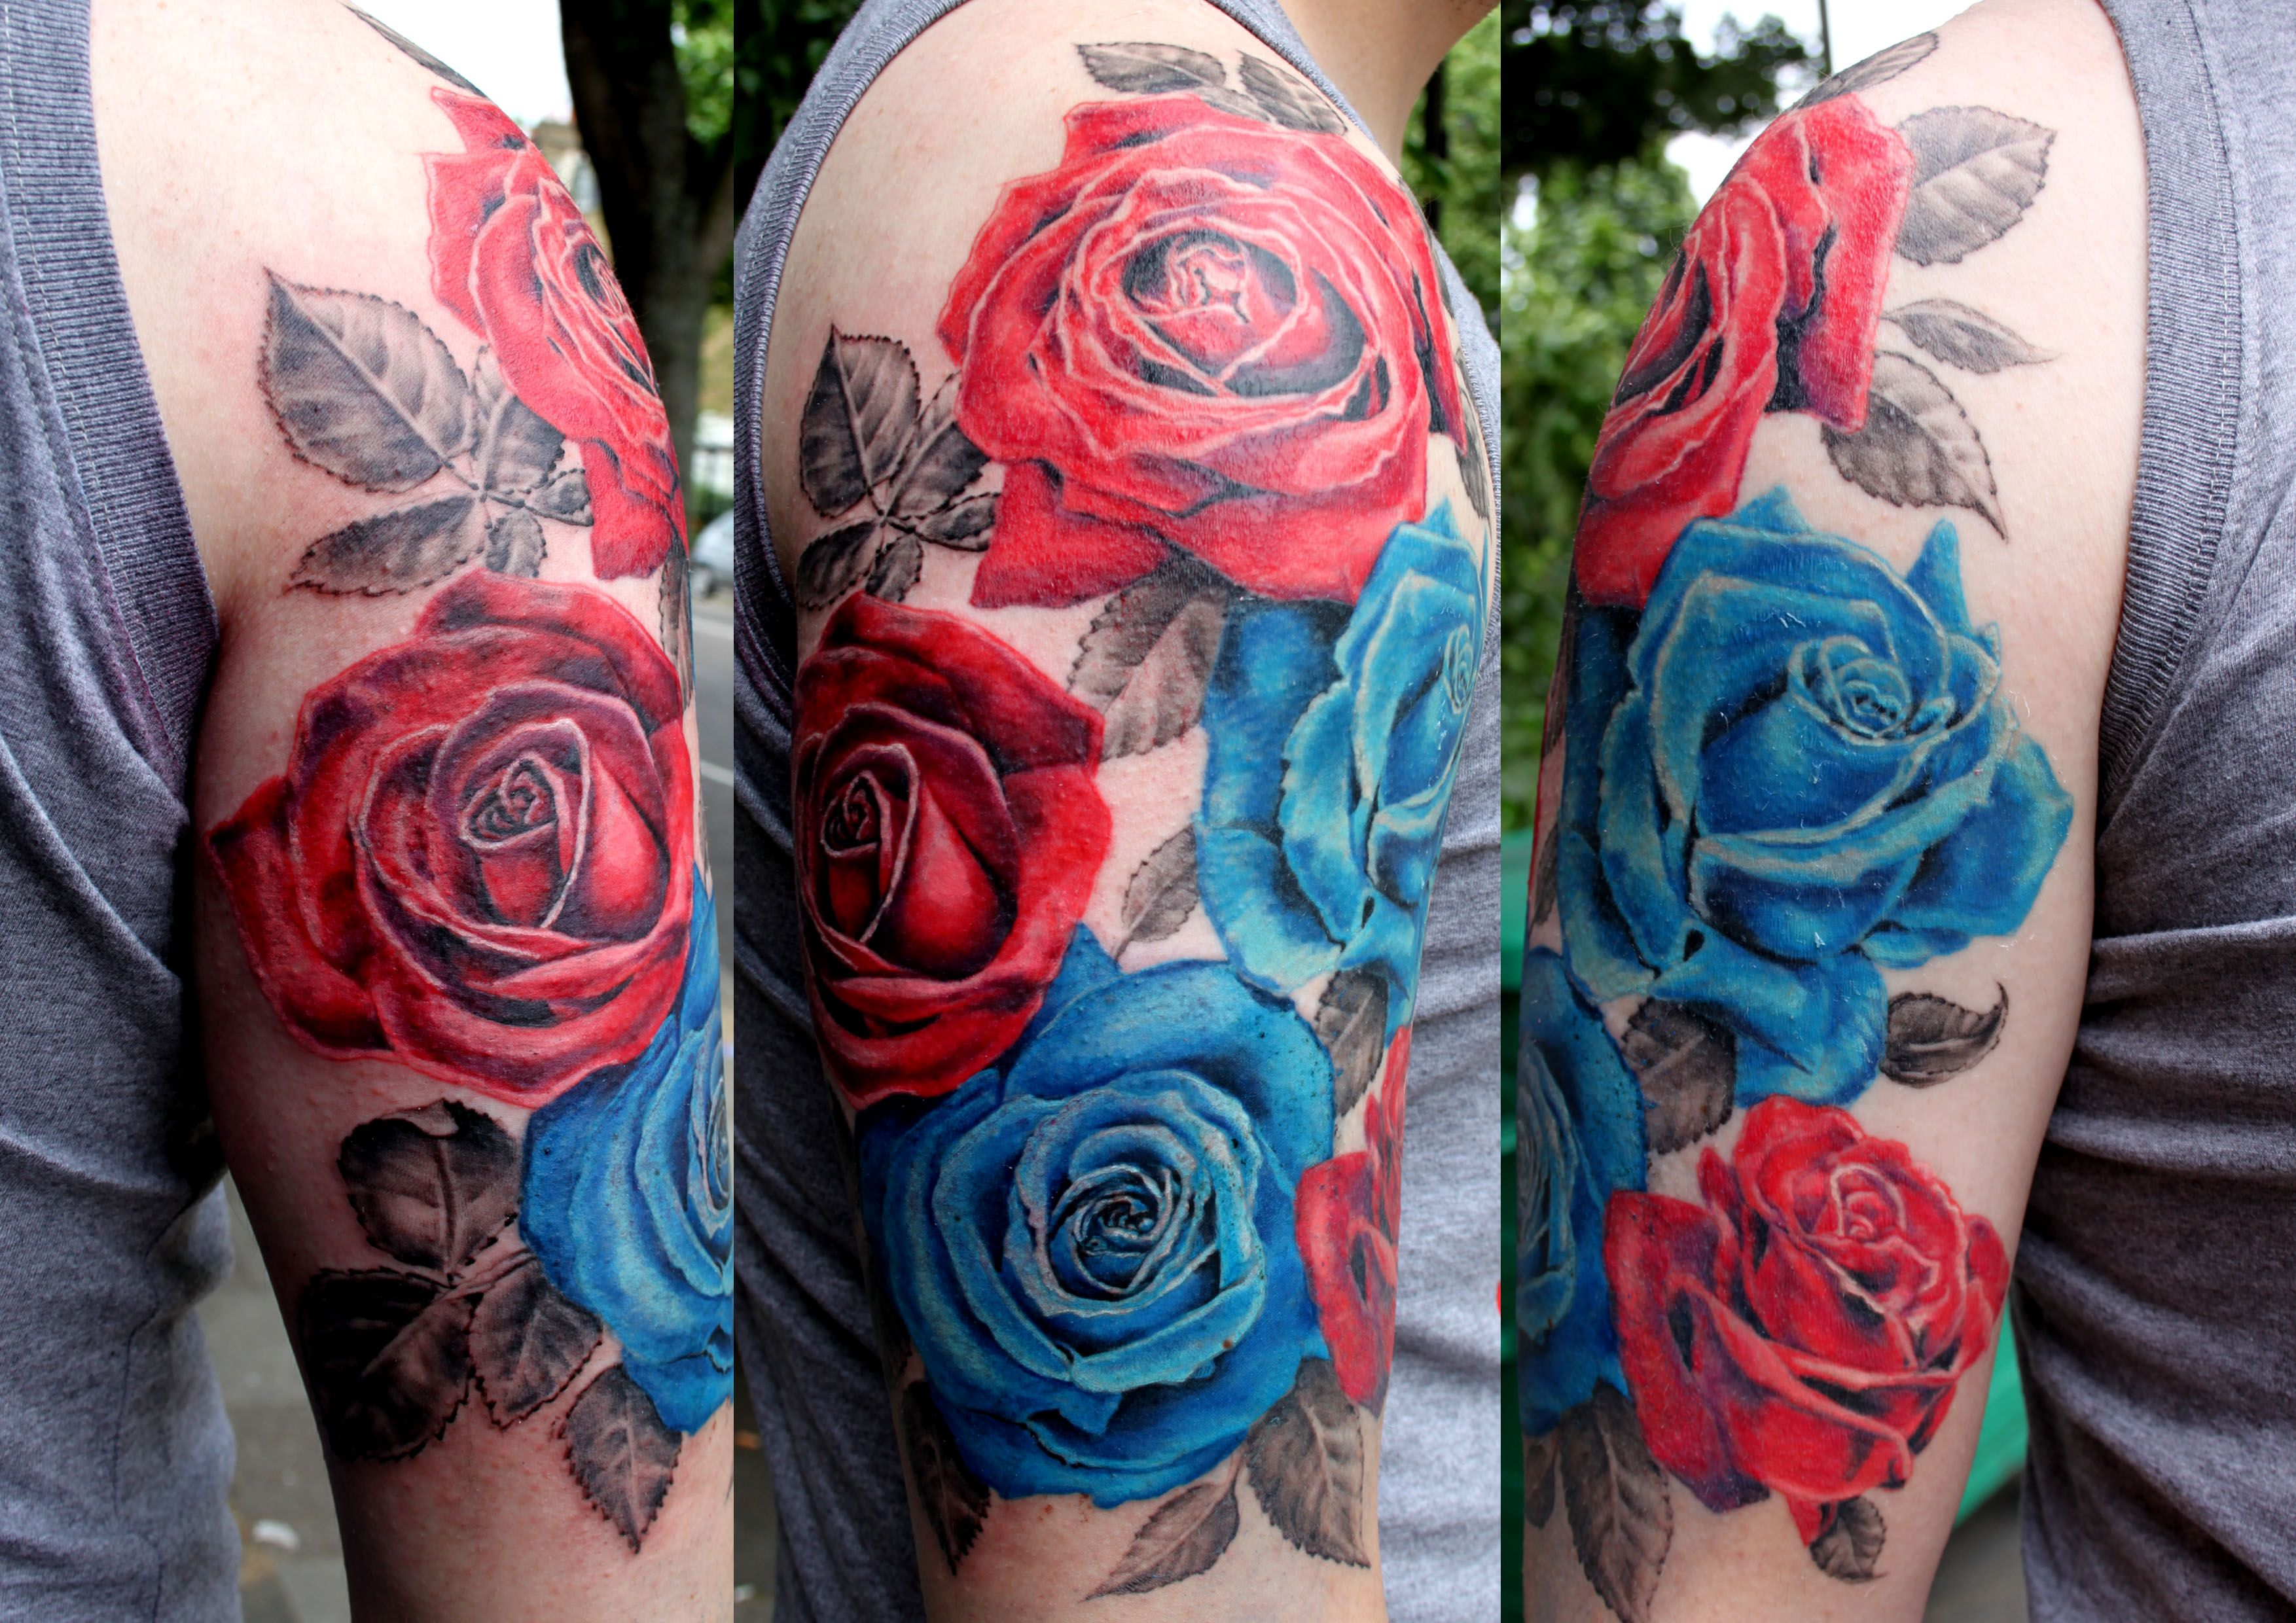 Red And Blue Roses Tattoo By Mirek Vel Stotker Blue Rose Tattoos Rose Tattoos Blue Flower Tattoos